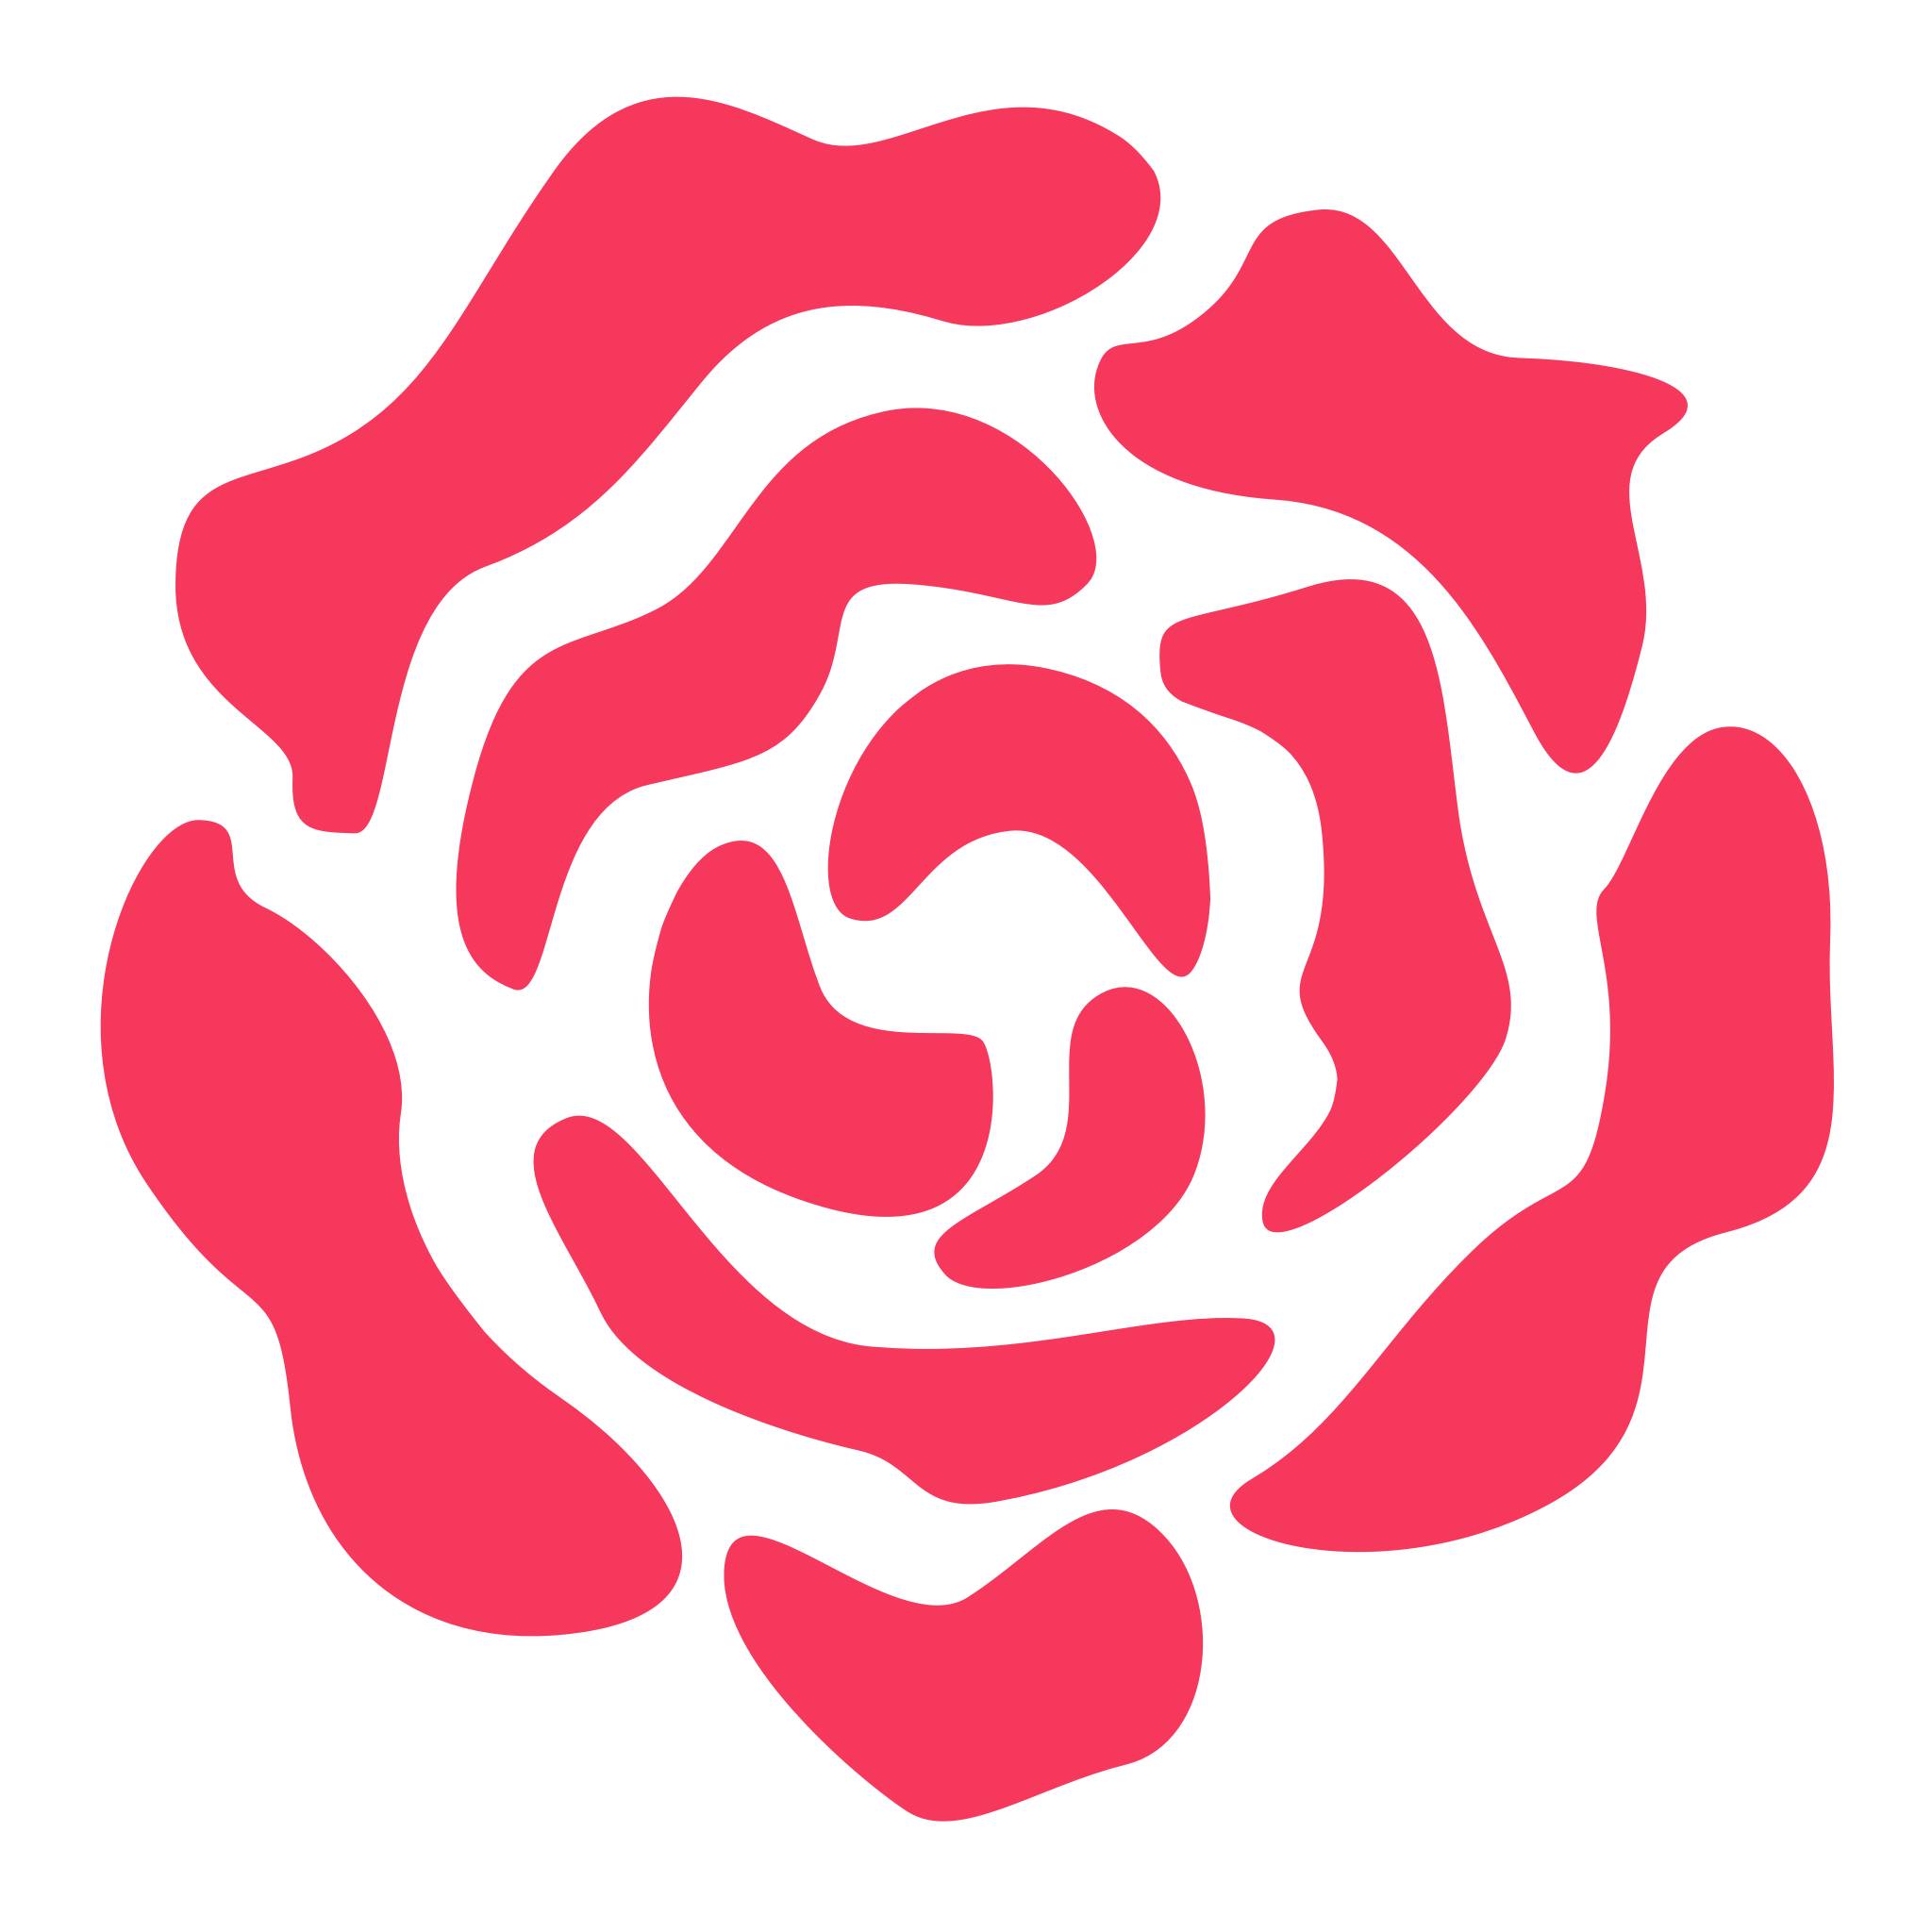 Pink drawing rose. F u background by